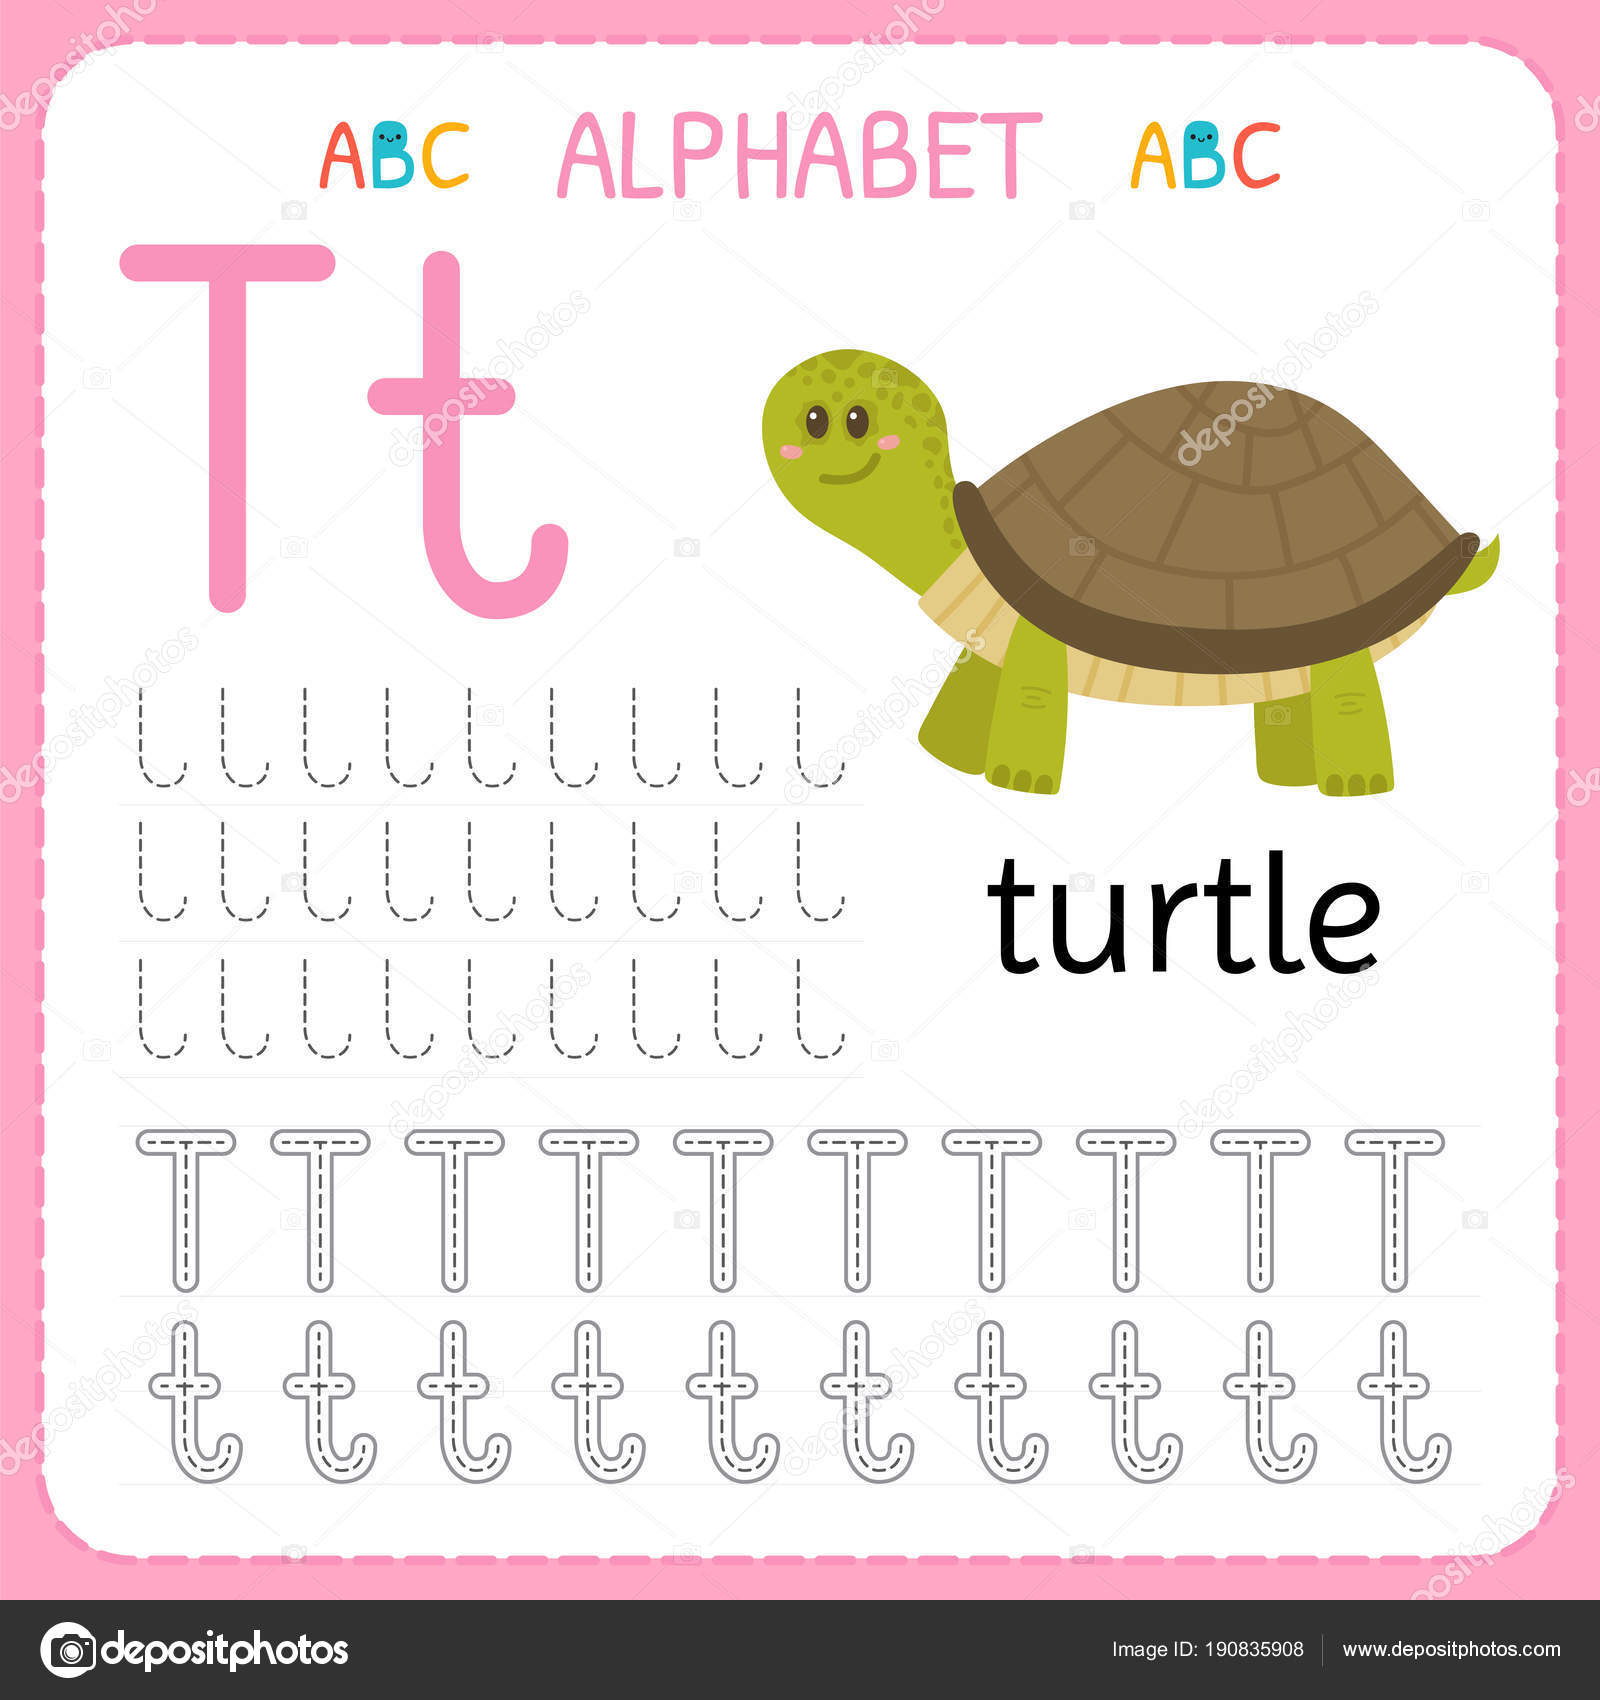 Alphabet Tracing Worksheet For Preschool And Kindergarten Writing Practice Letter T Exercises